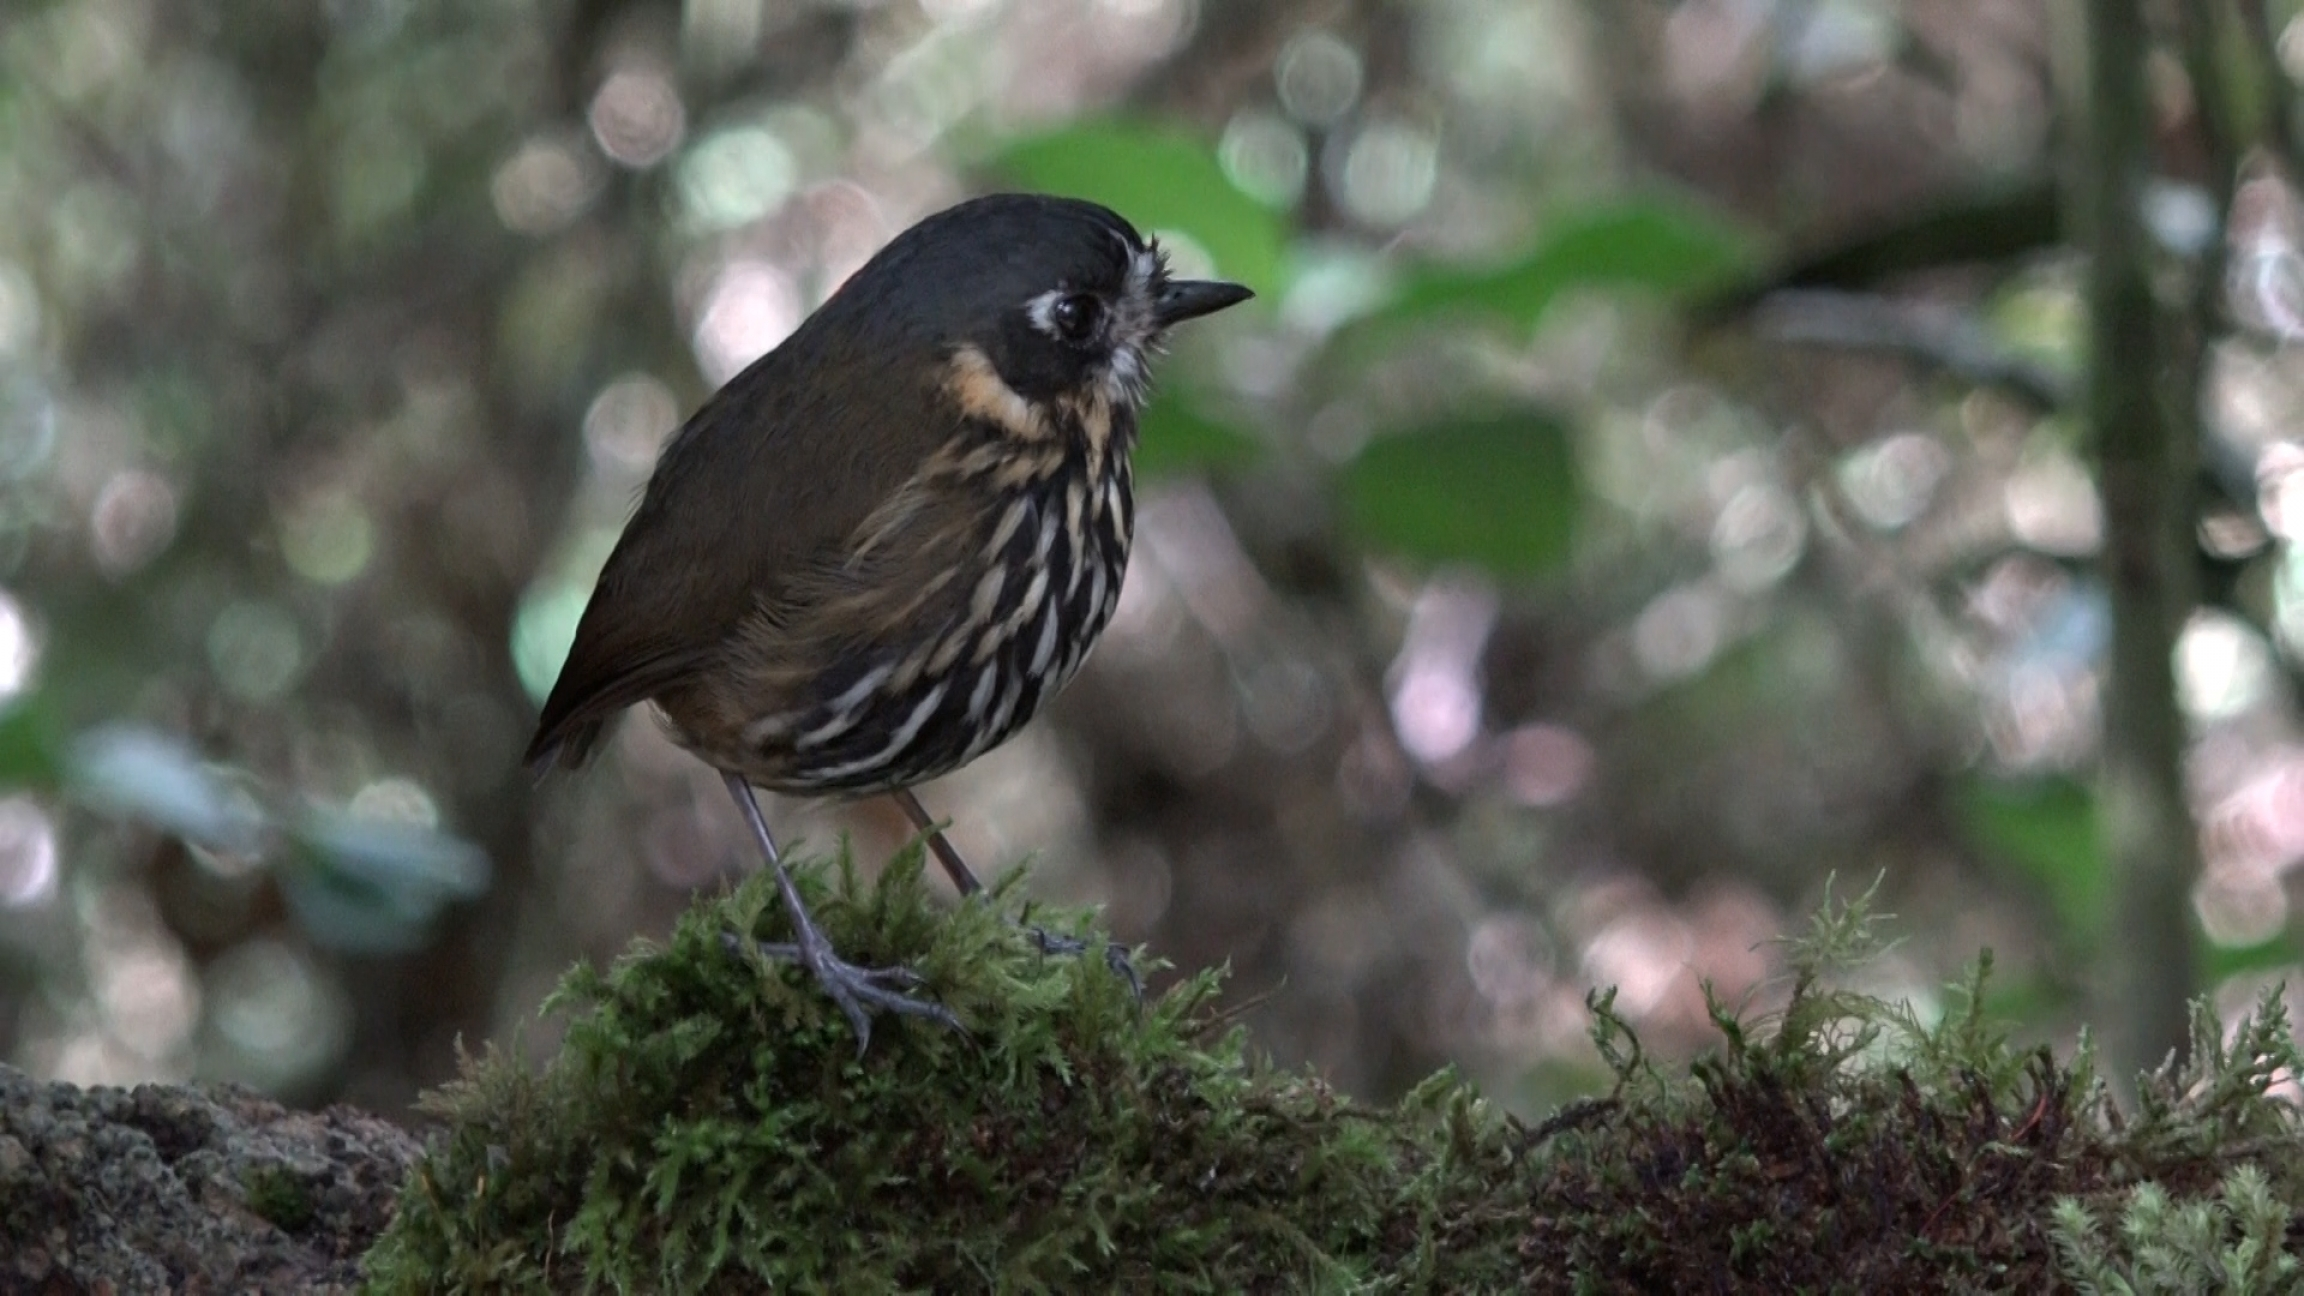 A crescent-faced antpitta at Hacienda El Bosque in Colombia. The bird dwells on the forest floor and is extremely hard to spot. Hacienda El Bosque is one of the only placeswhere it can be seen on a regular basis.